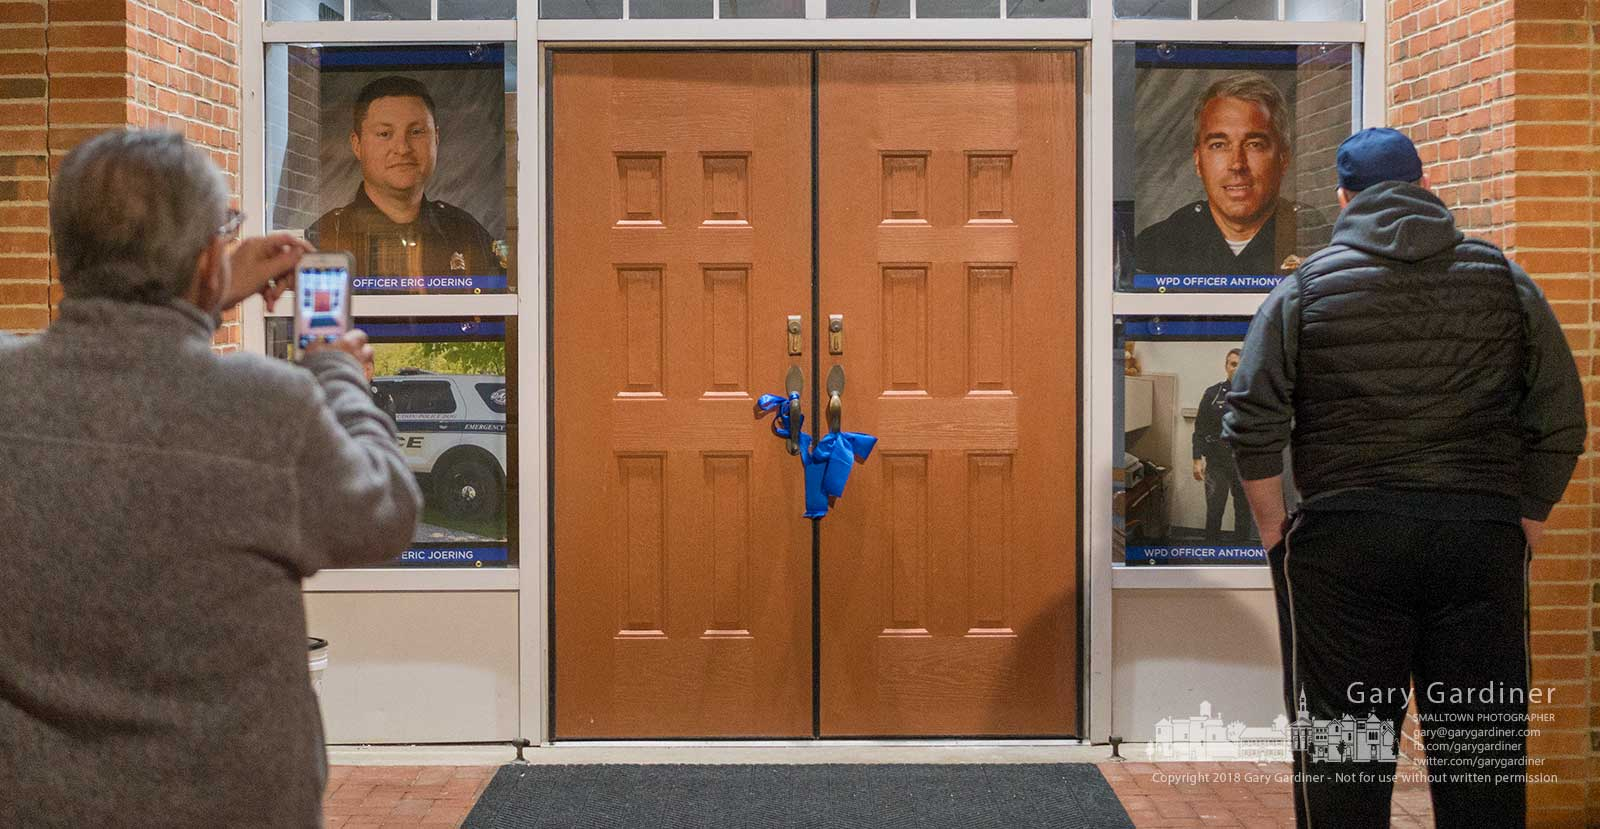 Mourners pause at the entrance to city hall where photos of Westerville Police Officers Eric Joering and Anthony Morelli are displayed. The two officers were killed Saturday. My Final Photo for Feb. 11, 2018.